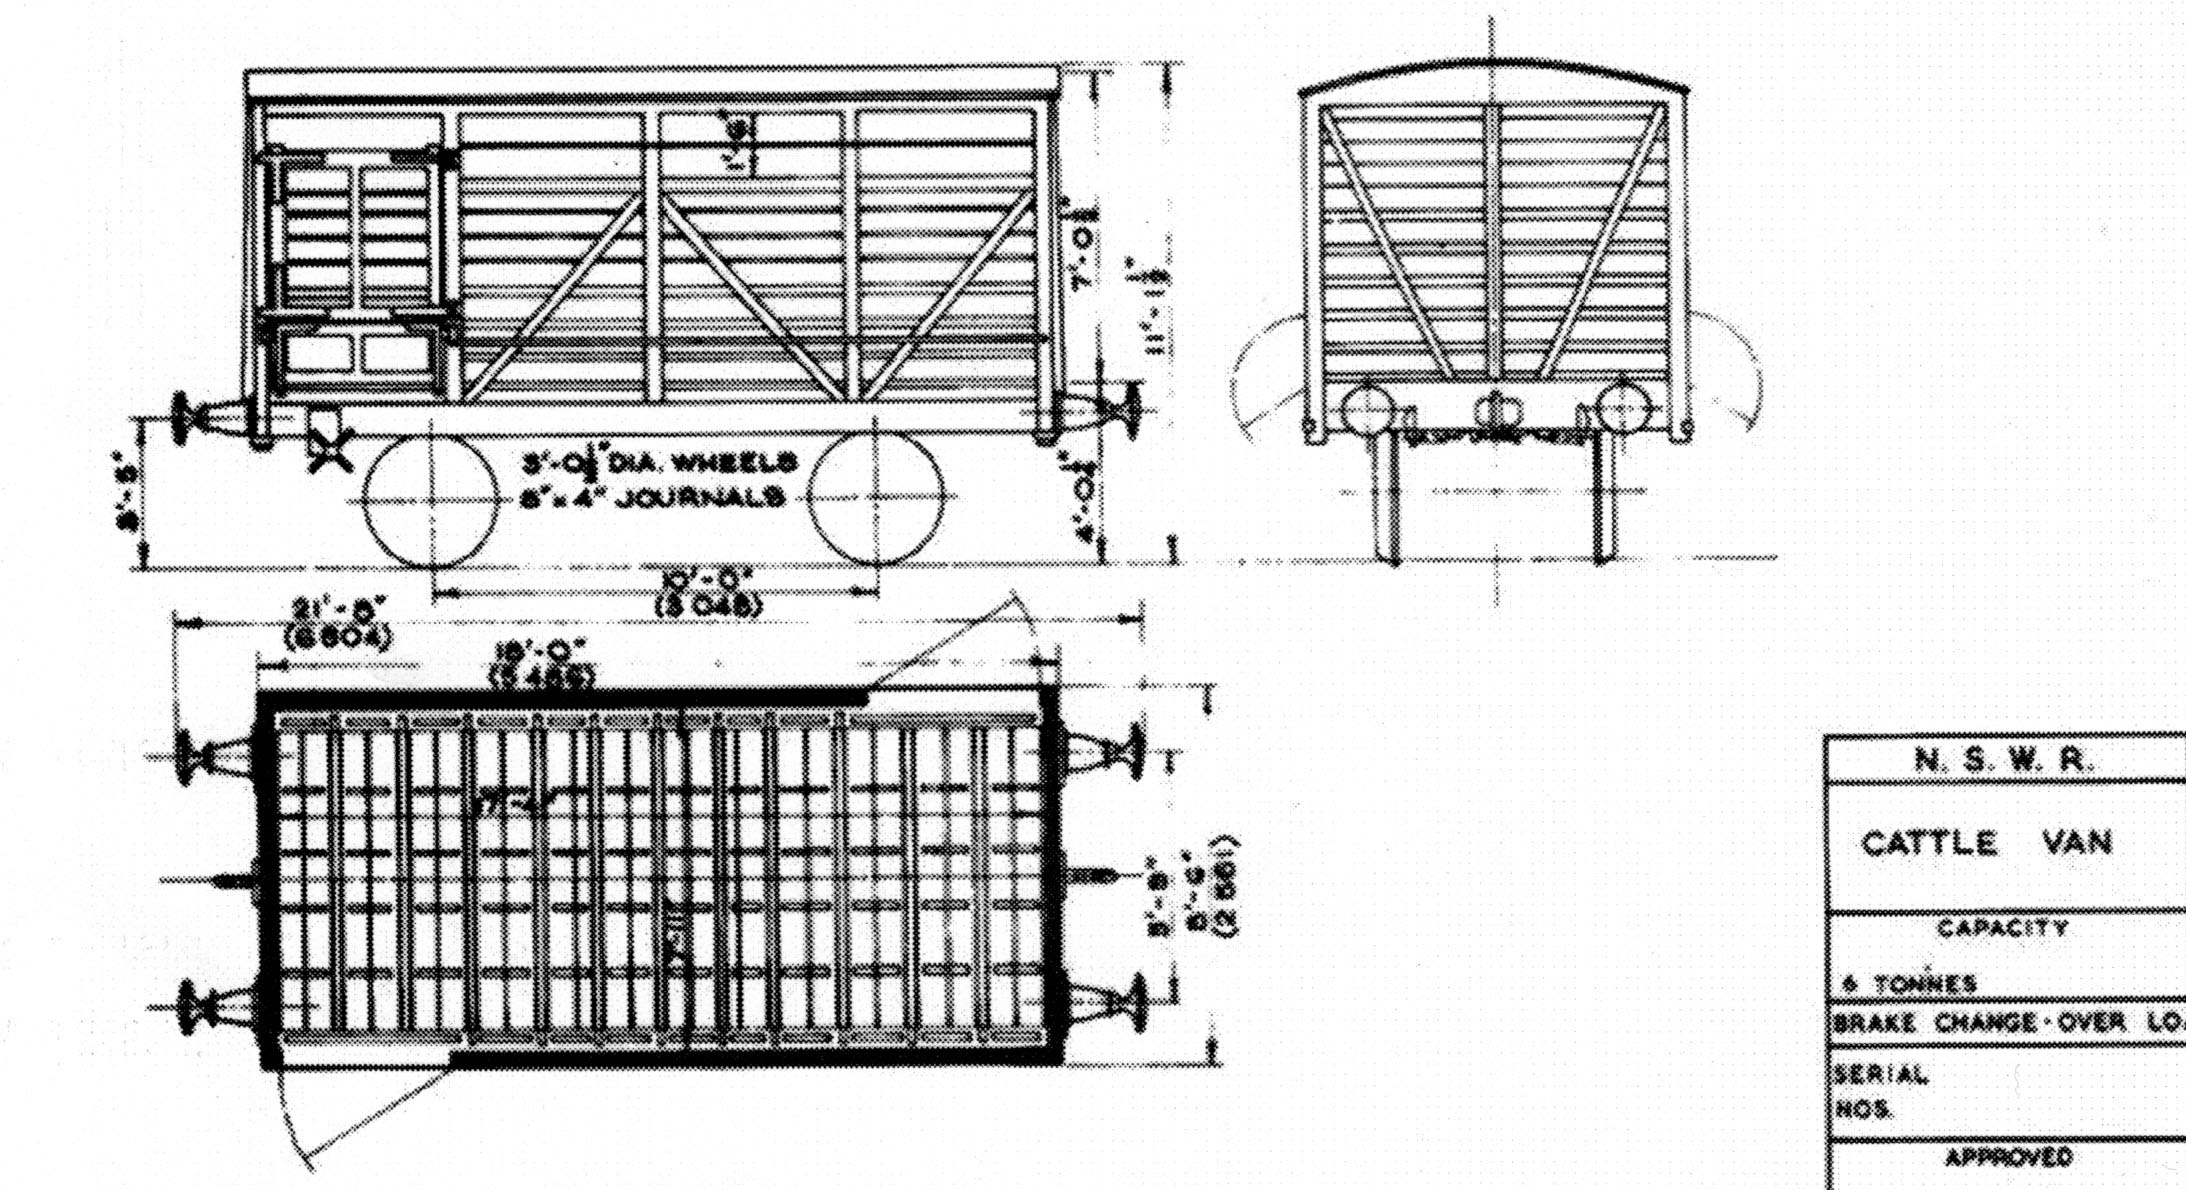 Design Drawings for the Cattle Wagon – NSWGR.